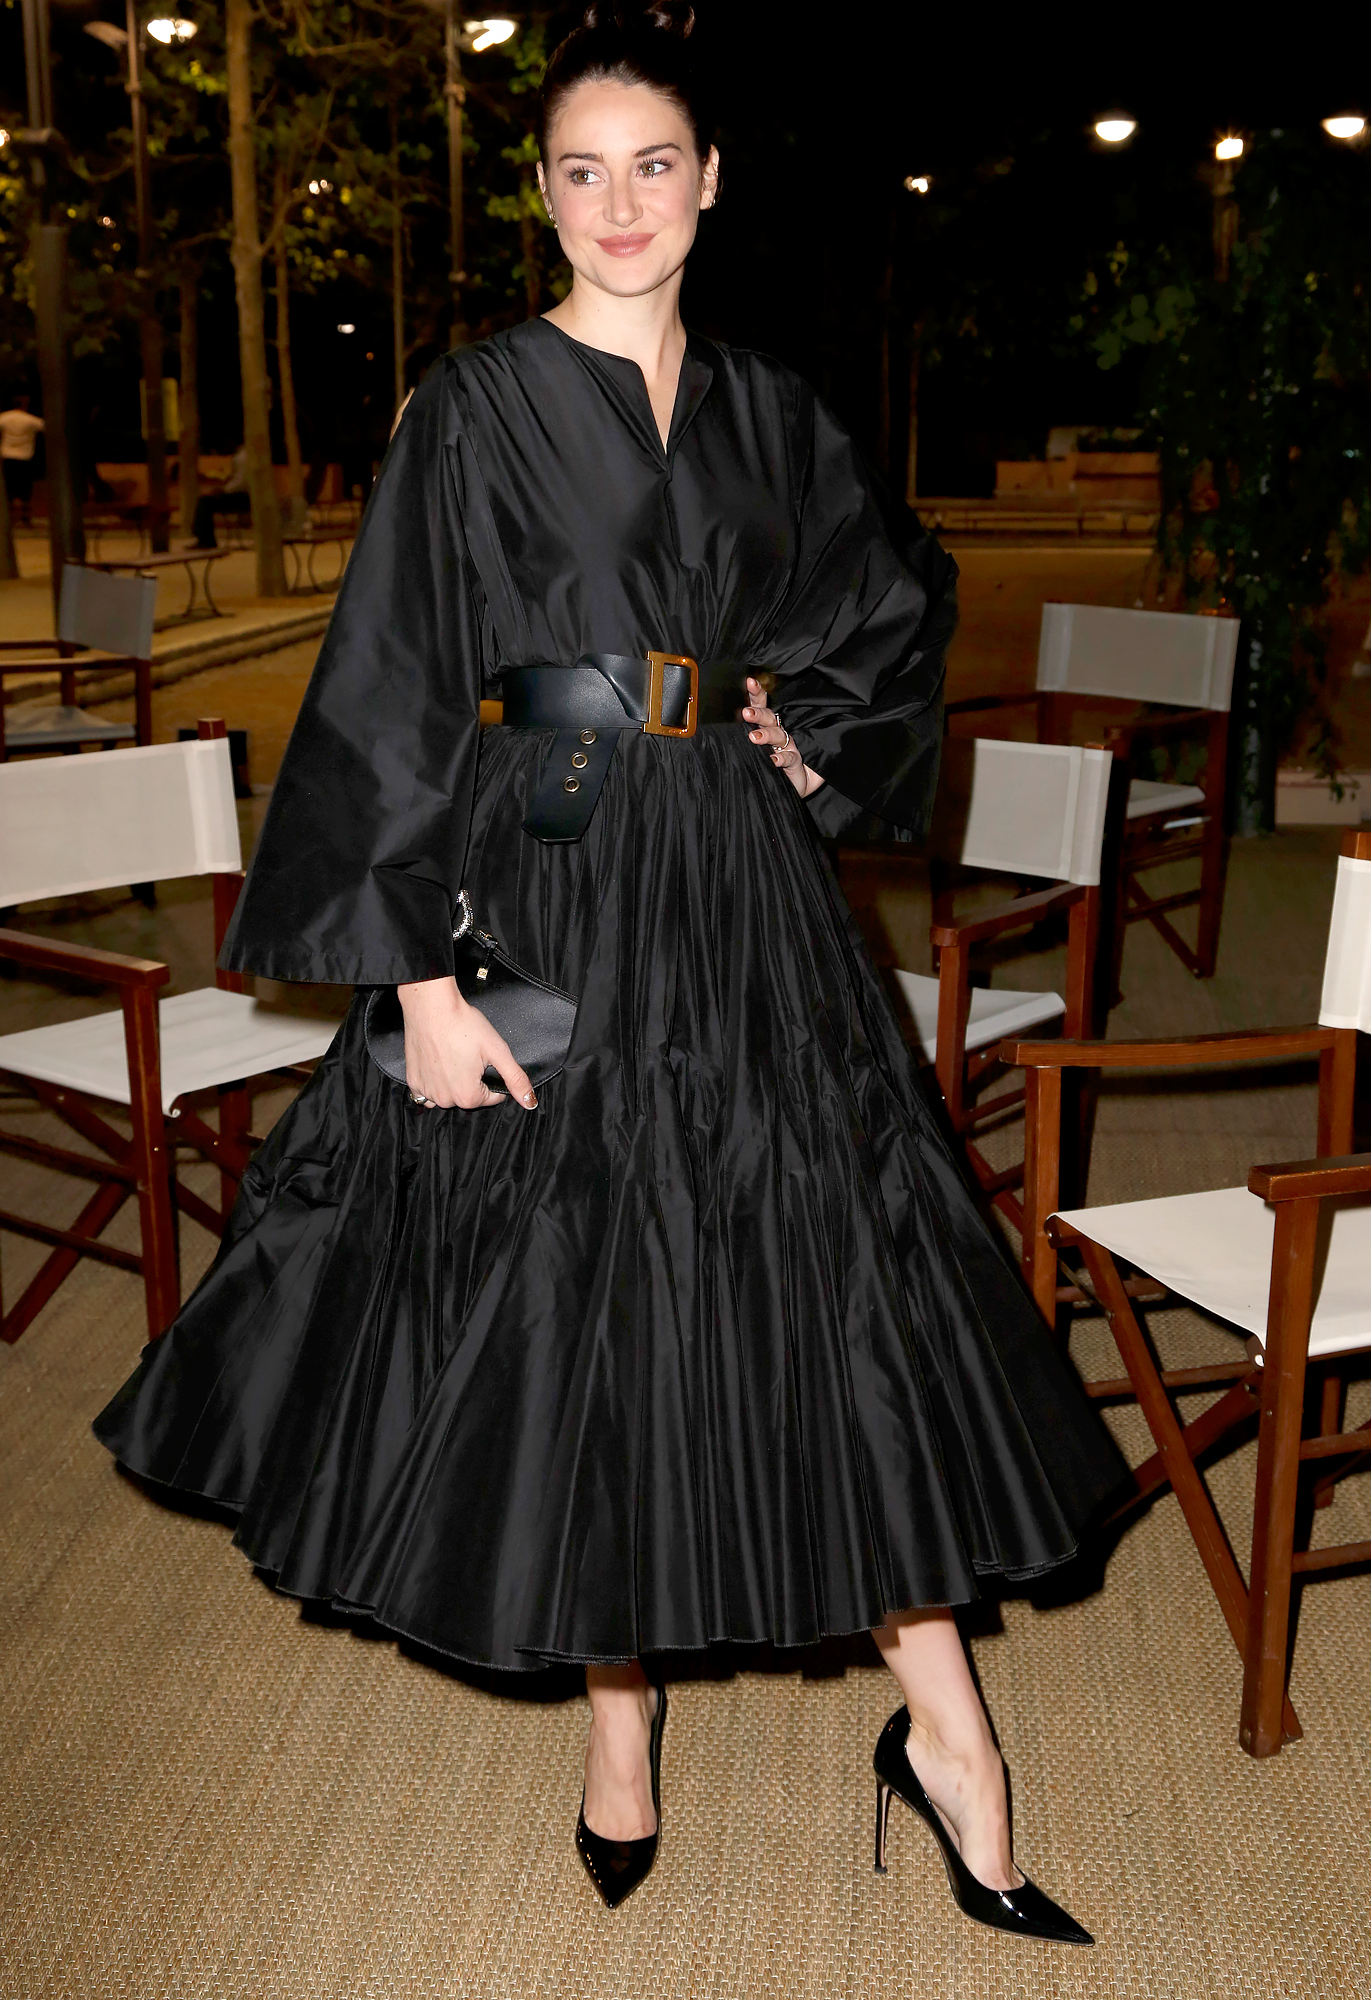 Shailene-Woodley-Cannes - Black was anything but boring for the Big Little Lies star in a flamenco-inspired Dior frock at a dinner for the fashion house on Wednesday, May 15.